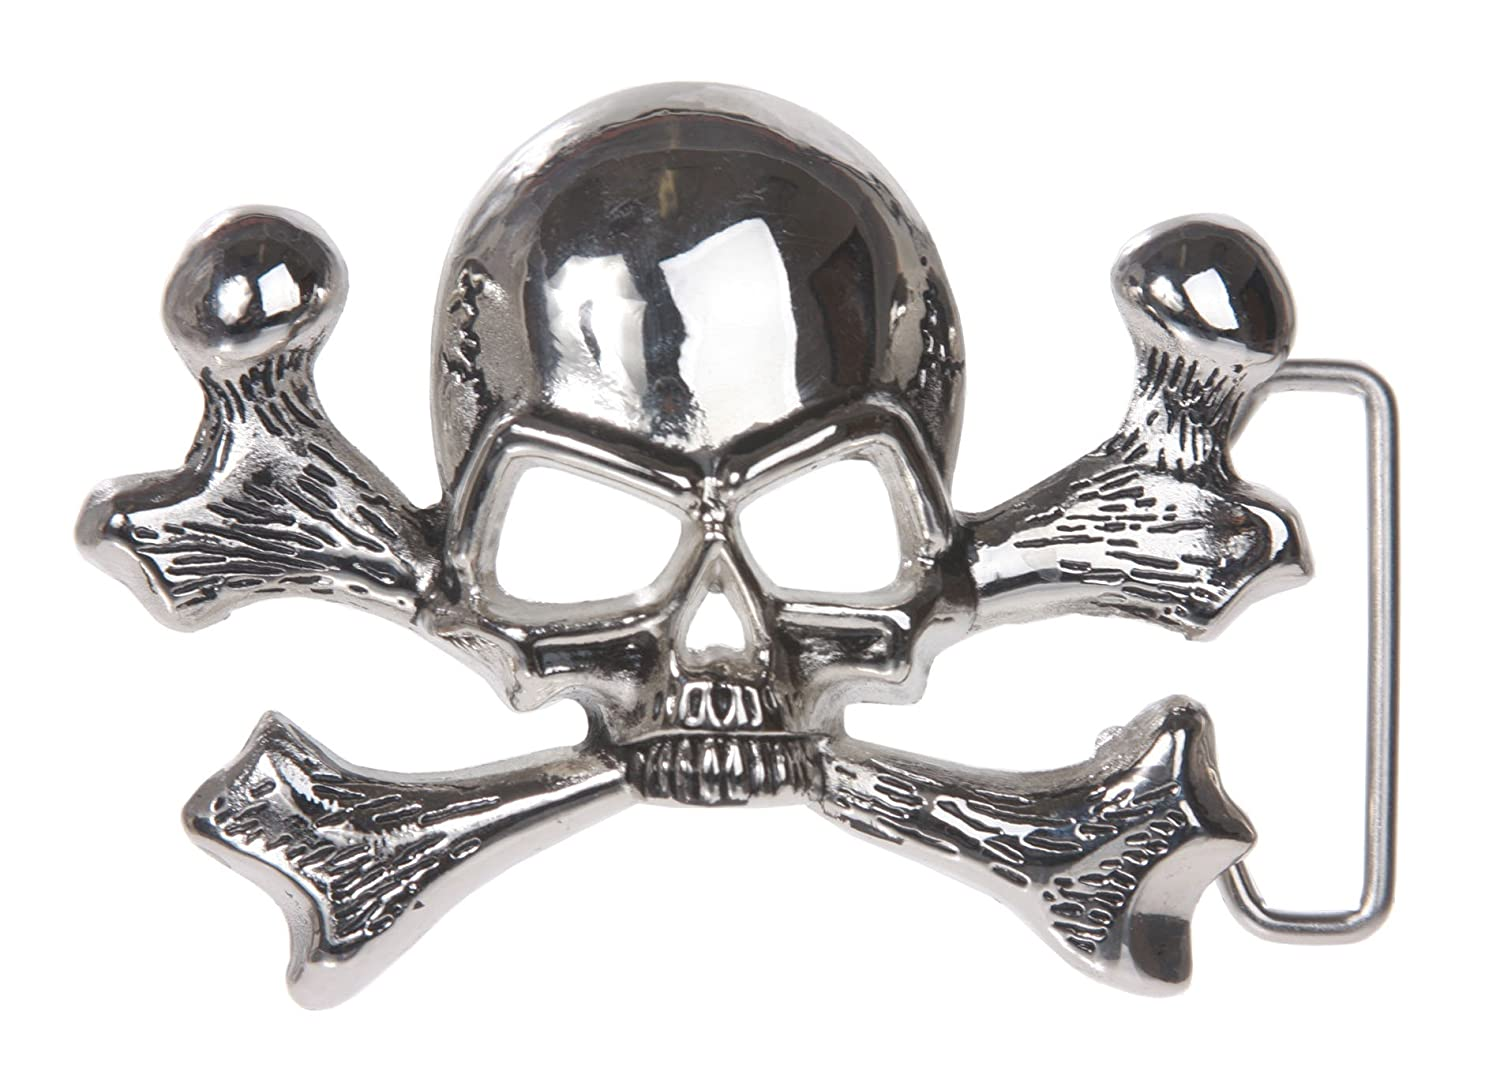 Skull and Cross Bone Pirate Belt Buckle, Shining Silver Beltiscool YF0736:A801